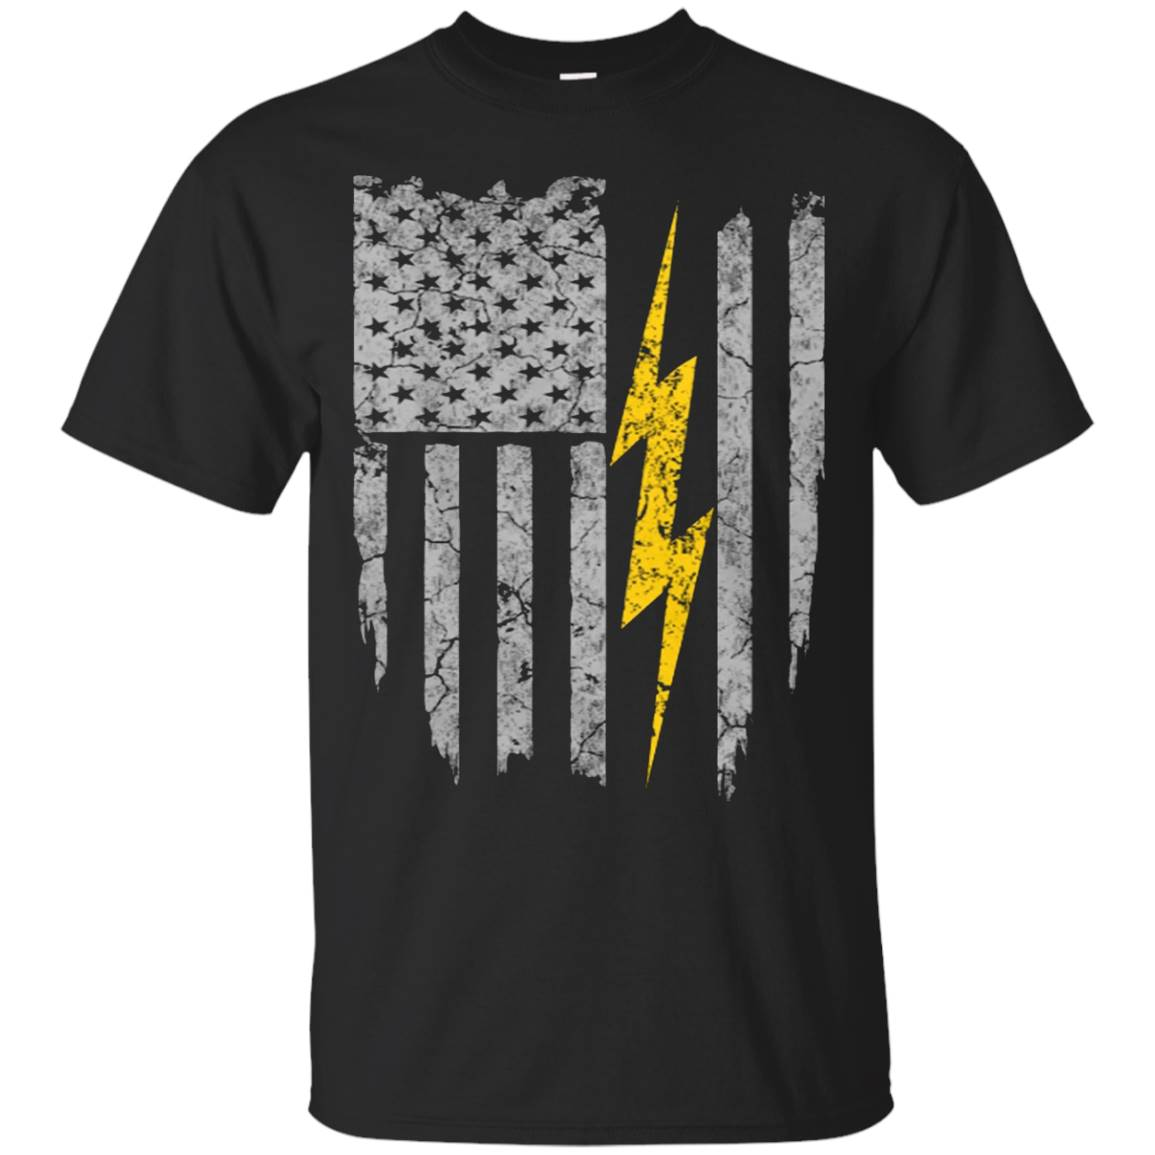 Electrician t shirt – Electrician-Flag Ltd.